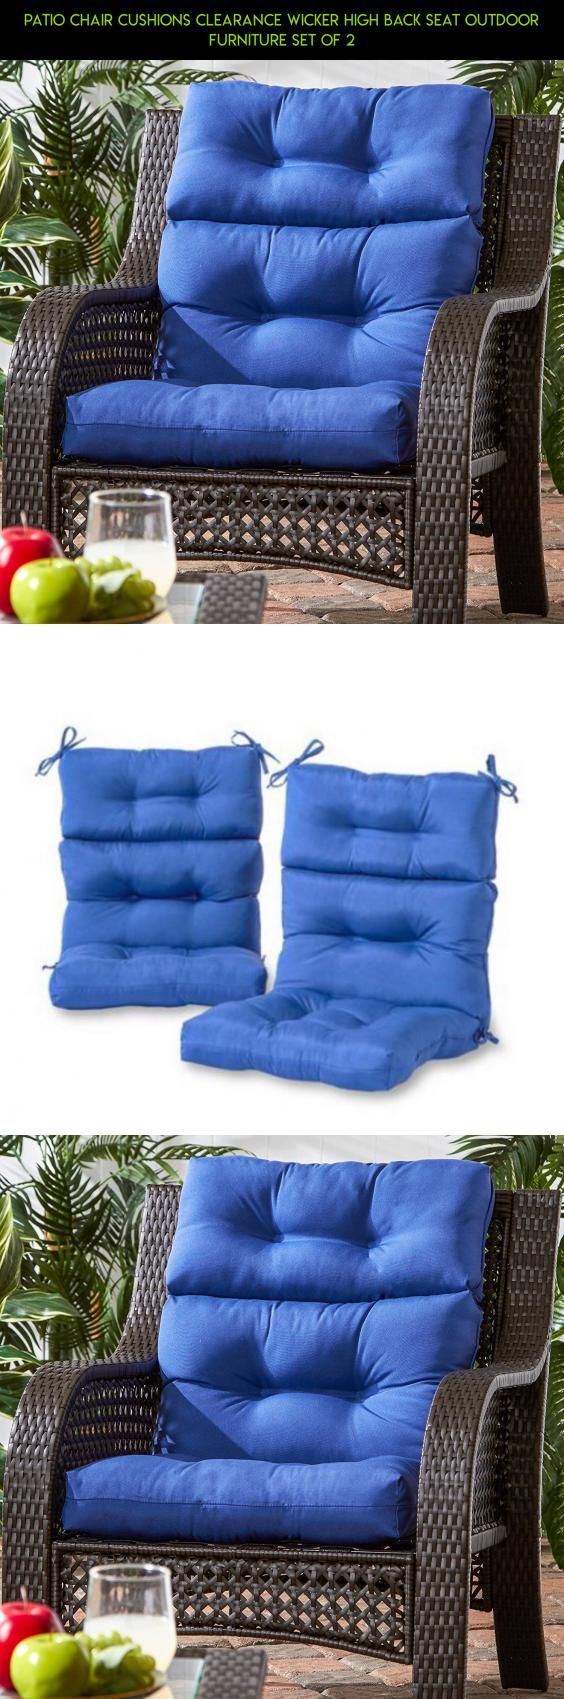 Patio Chair Cushions Clearance Wicker High Back Seat Outdoor Furniture Set  Of 2 #plans #